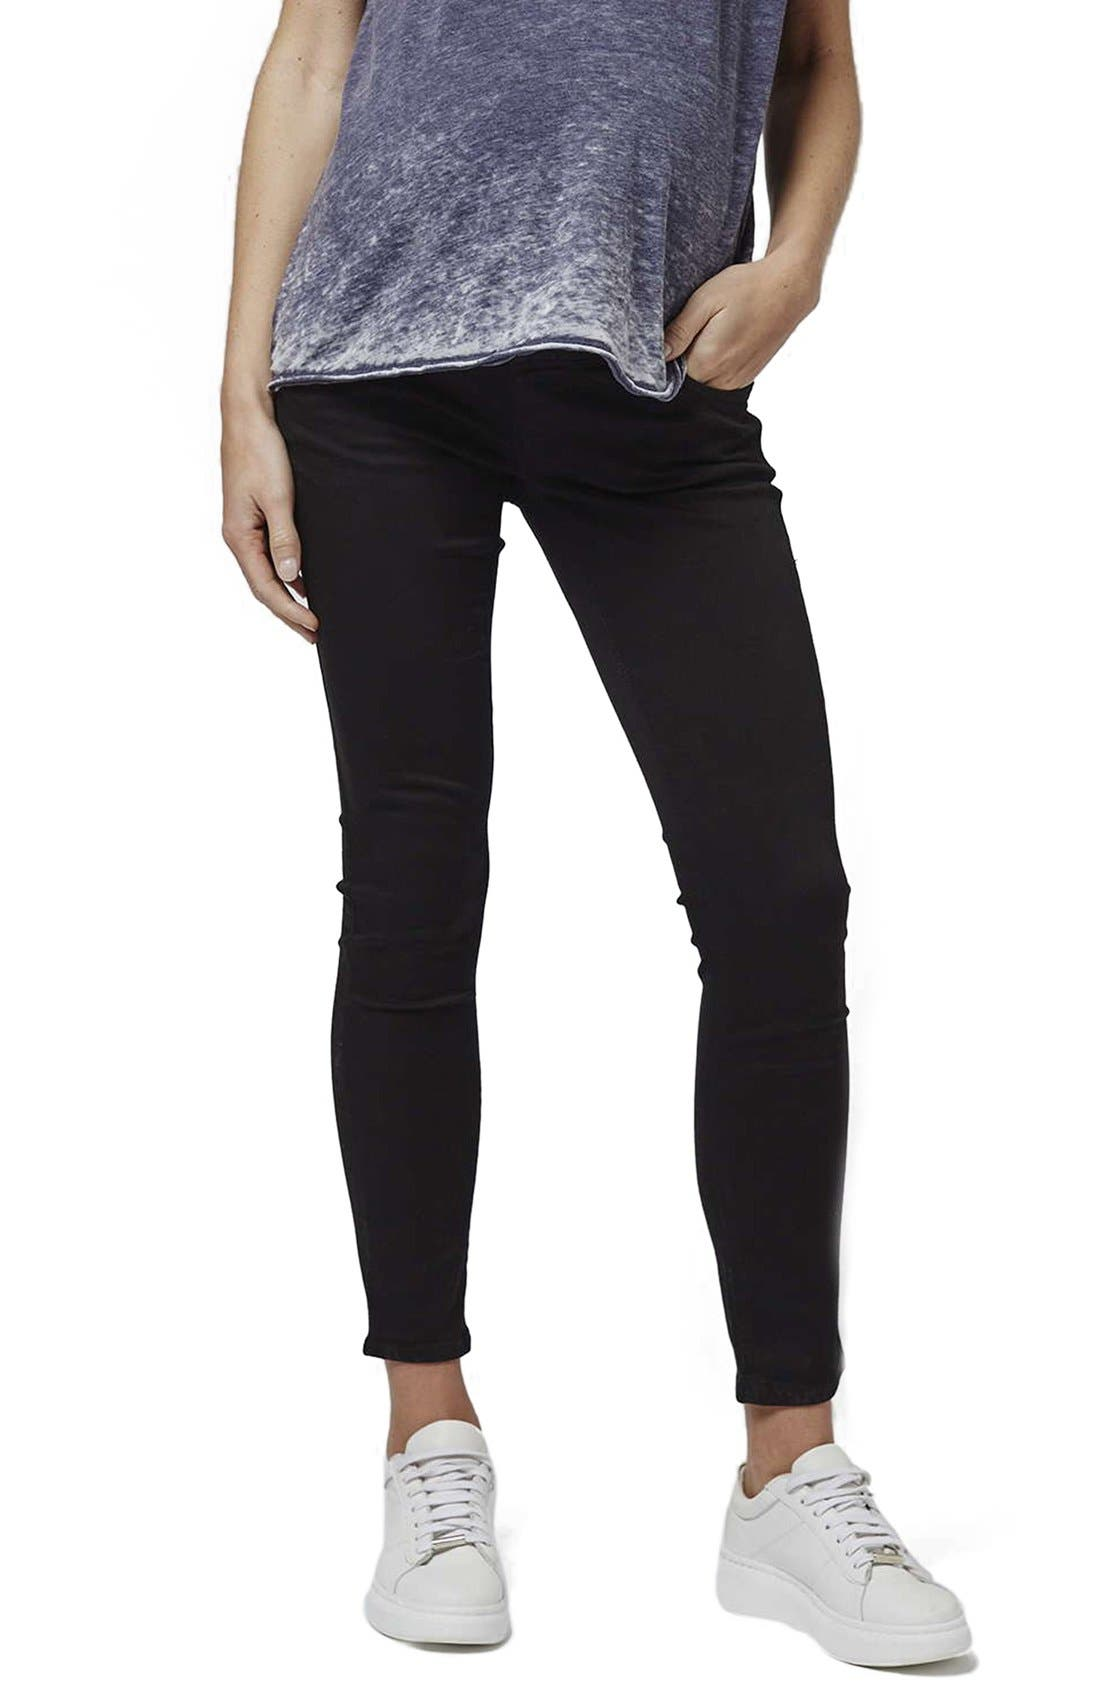 Topshop 'Leigh' Over the Bump Skinny Maternity Jeans